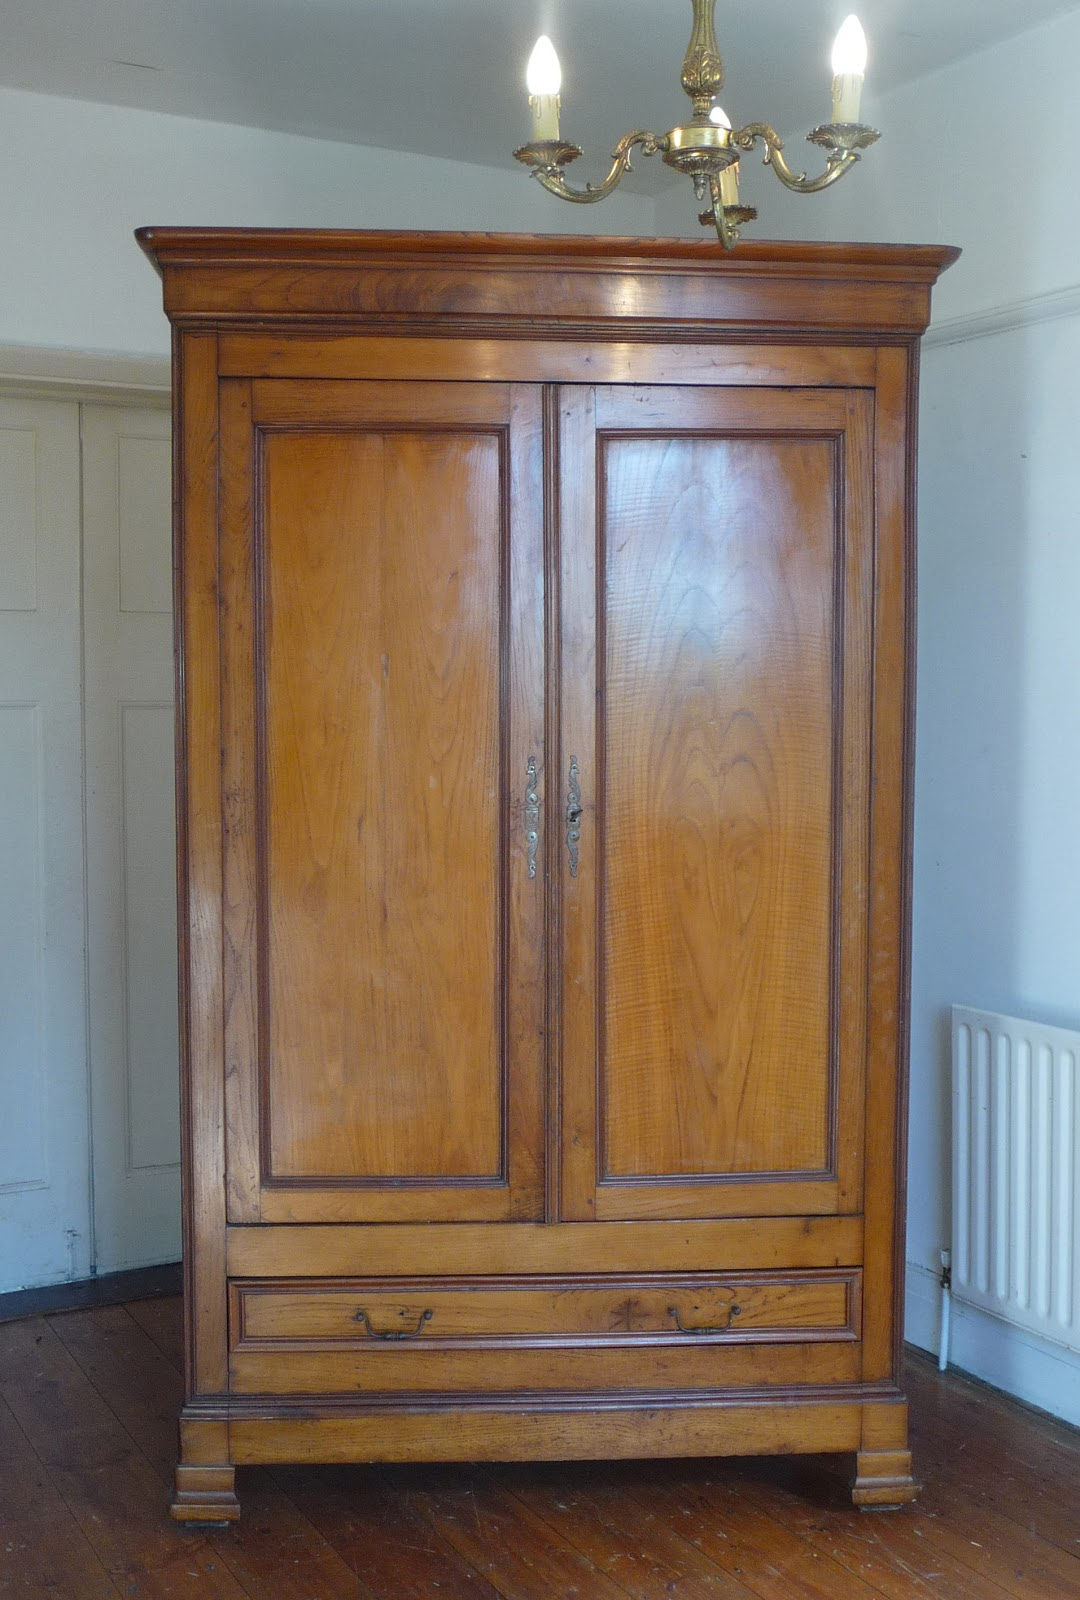 ... Furniture: French Furniture - A Guide to French Furniture Styles